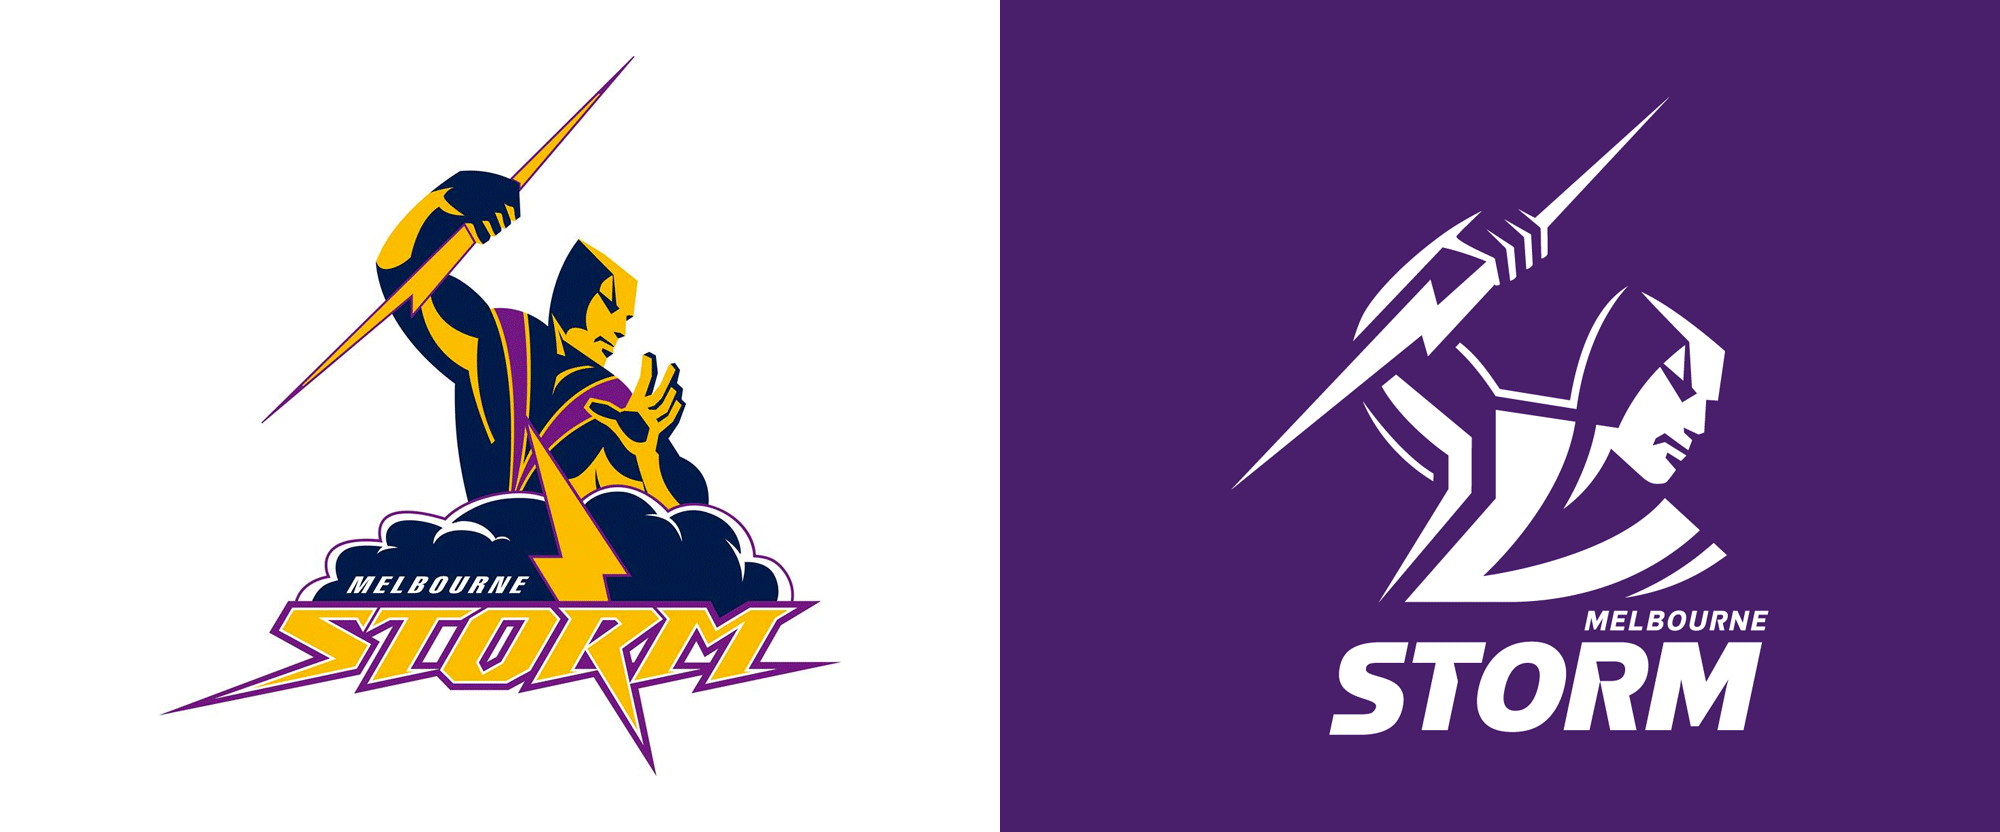 New Logo for Melbourne Storm by WiteKite